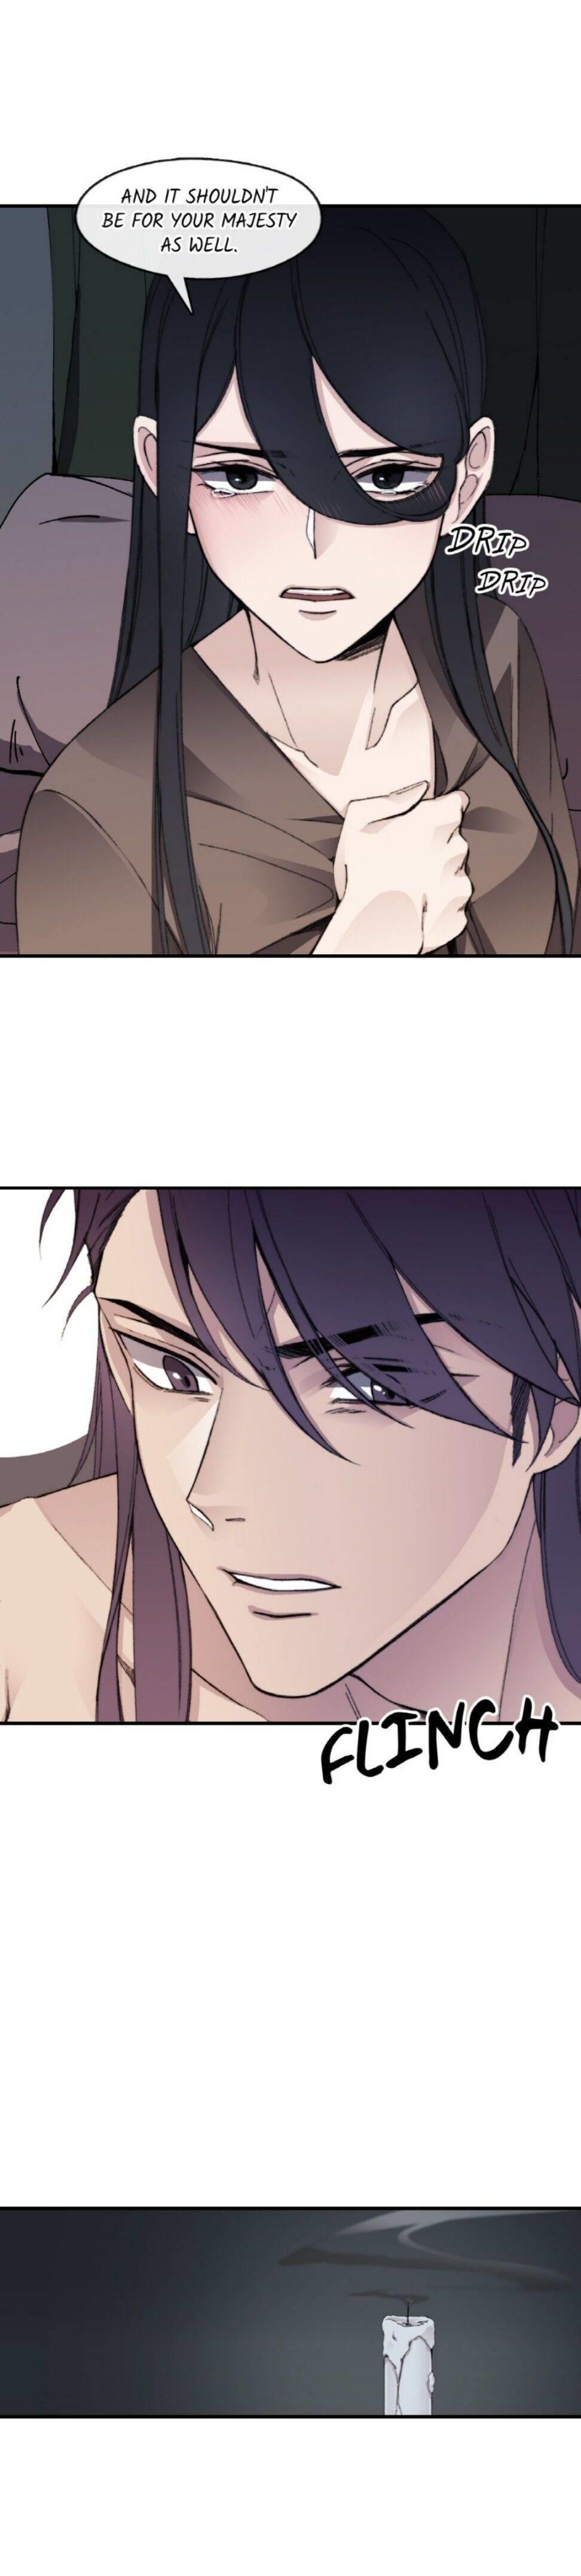 The Emperor'S Lover Chapter 16 page 31 - Mangakakalots.com